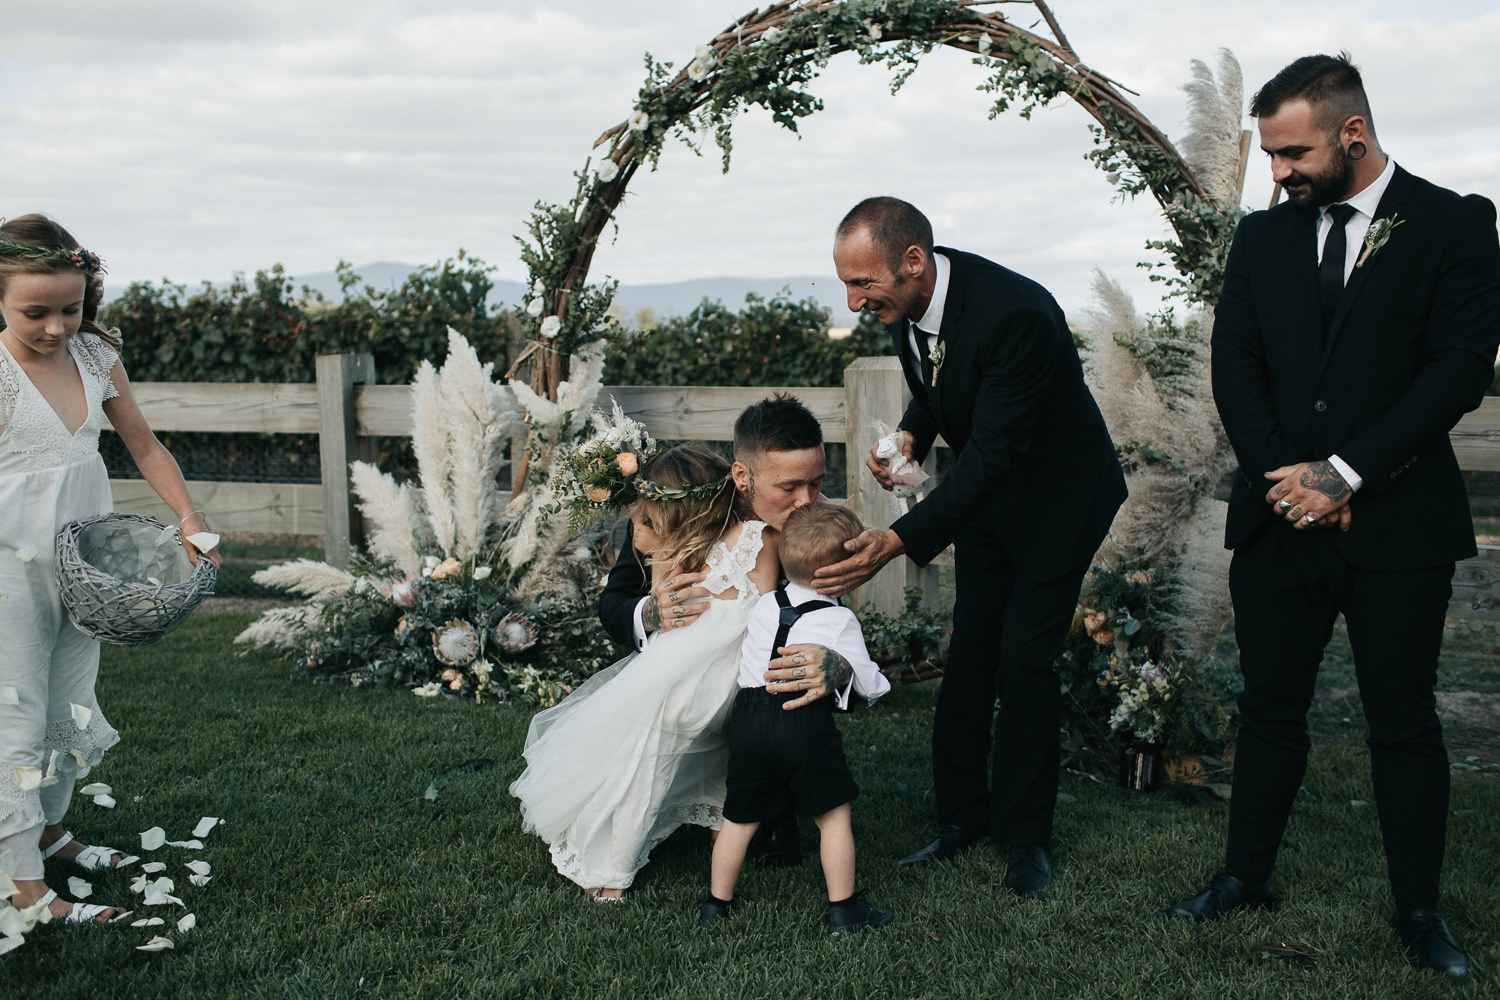 zonzo-estate-yarra-valley-wedding-photographer_0051.jpg